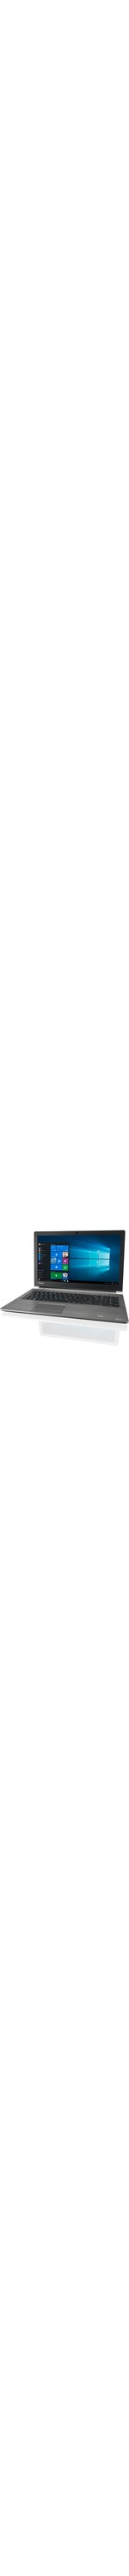 Toshiba Satellite Pro A50-C-24W 39.6 cm 15.6And#34; LCD Notebook - Intel Core i5 6th Gen